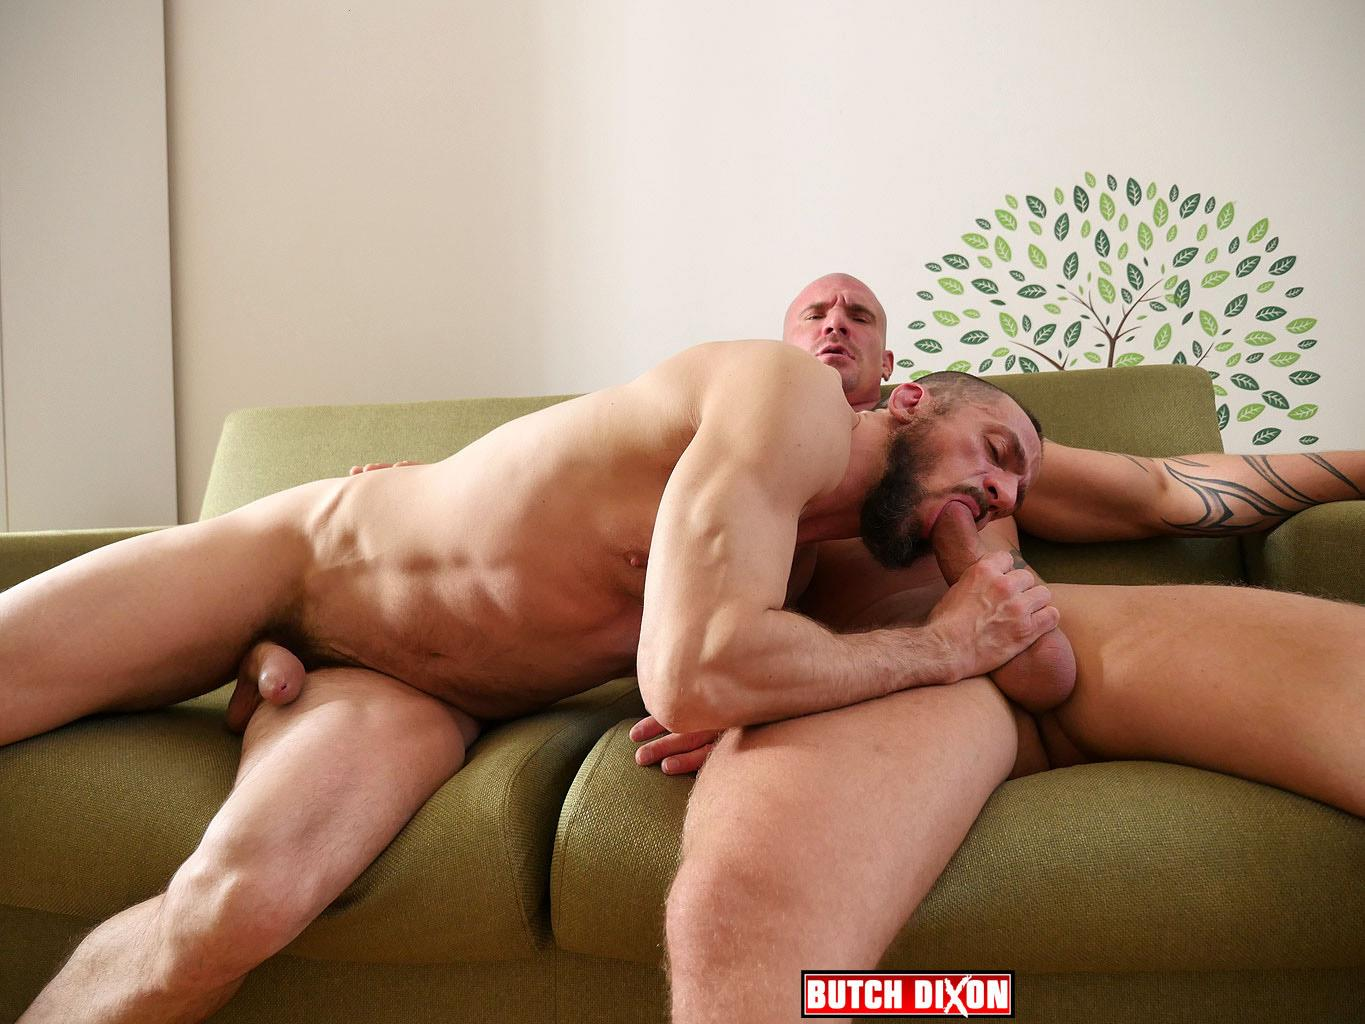 Butch Dixon Erik Lenn and Mike Bourne Masculine Guys Fucking Bareback Amateur Gay Porn 11